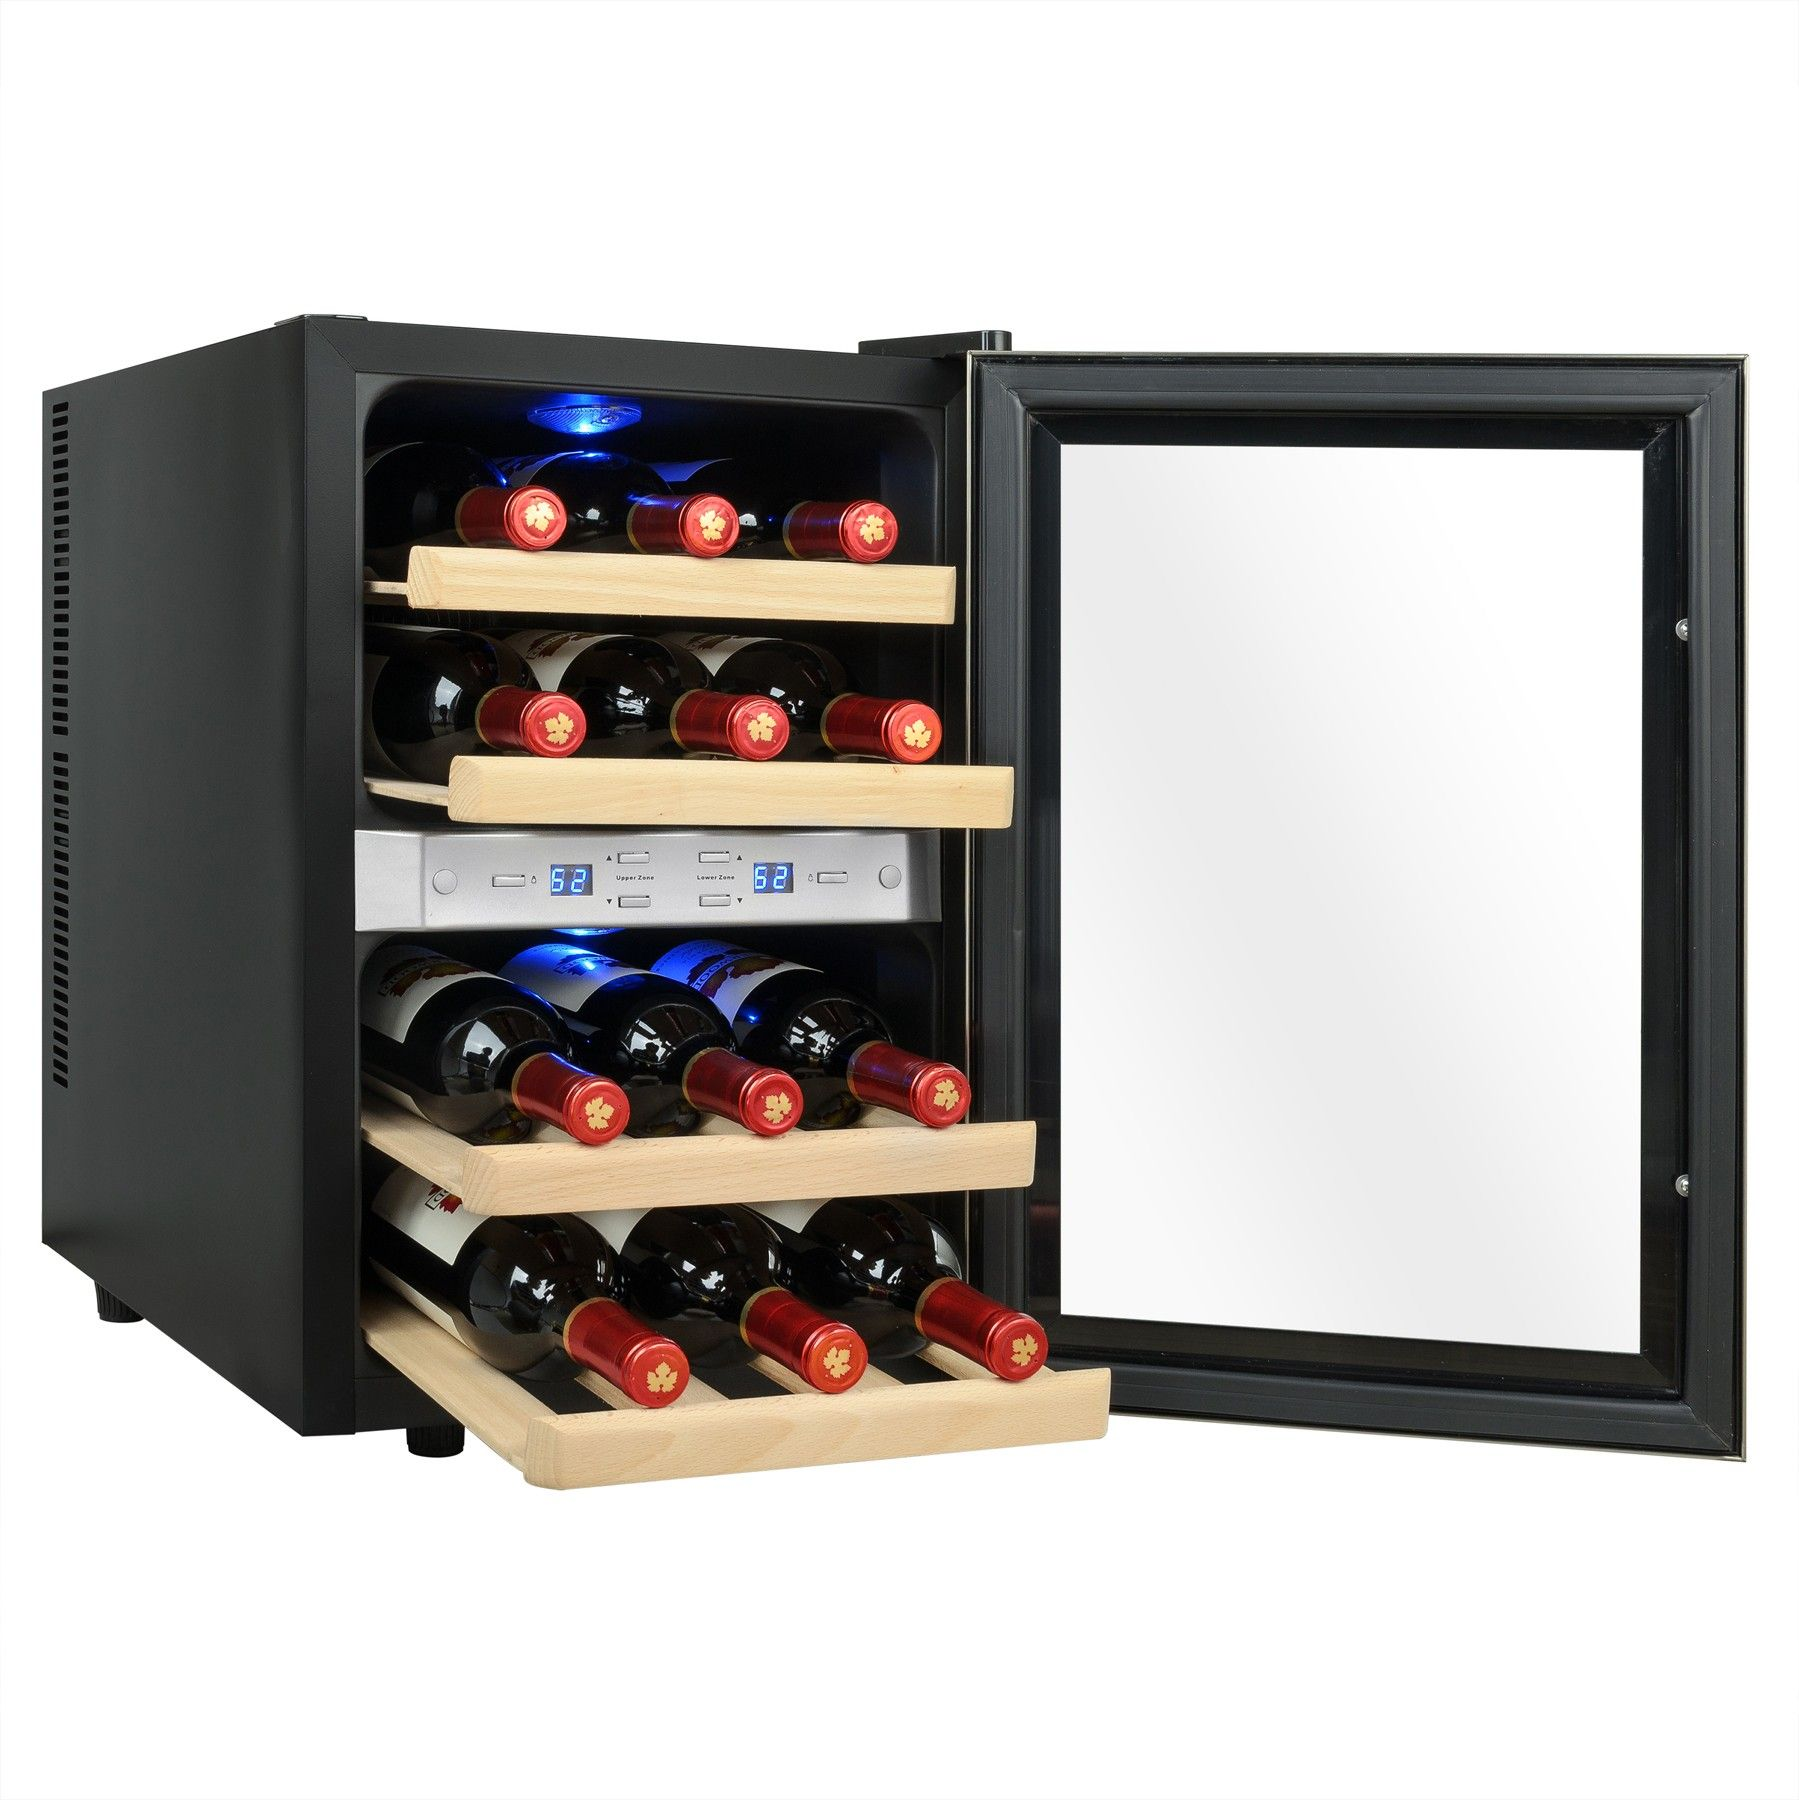 AKDY WC0028 - 12-Bottle Dual Zone Thermoelectric Wine Cooler Chiller in Stainless Steel with  sc 1 st  Pinterest & AKDY WC0028 - 12-Bottle Dual Zone Thermoelectric Wine Cooler Chiller ...